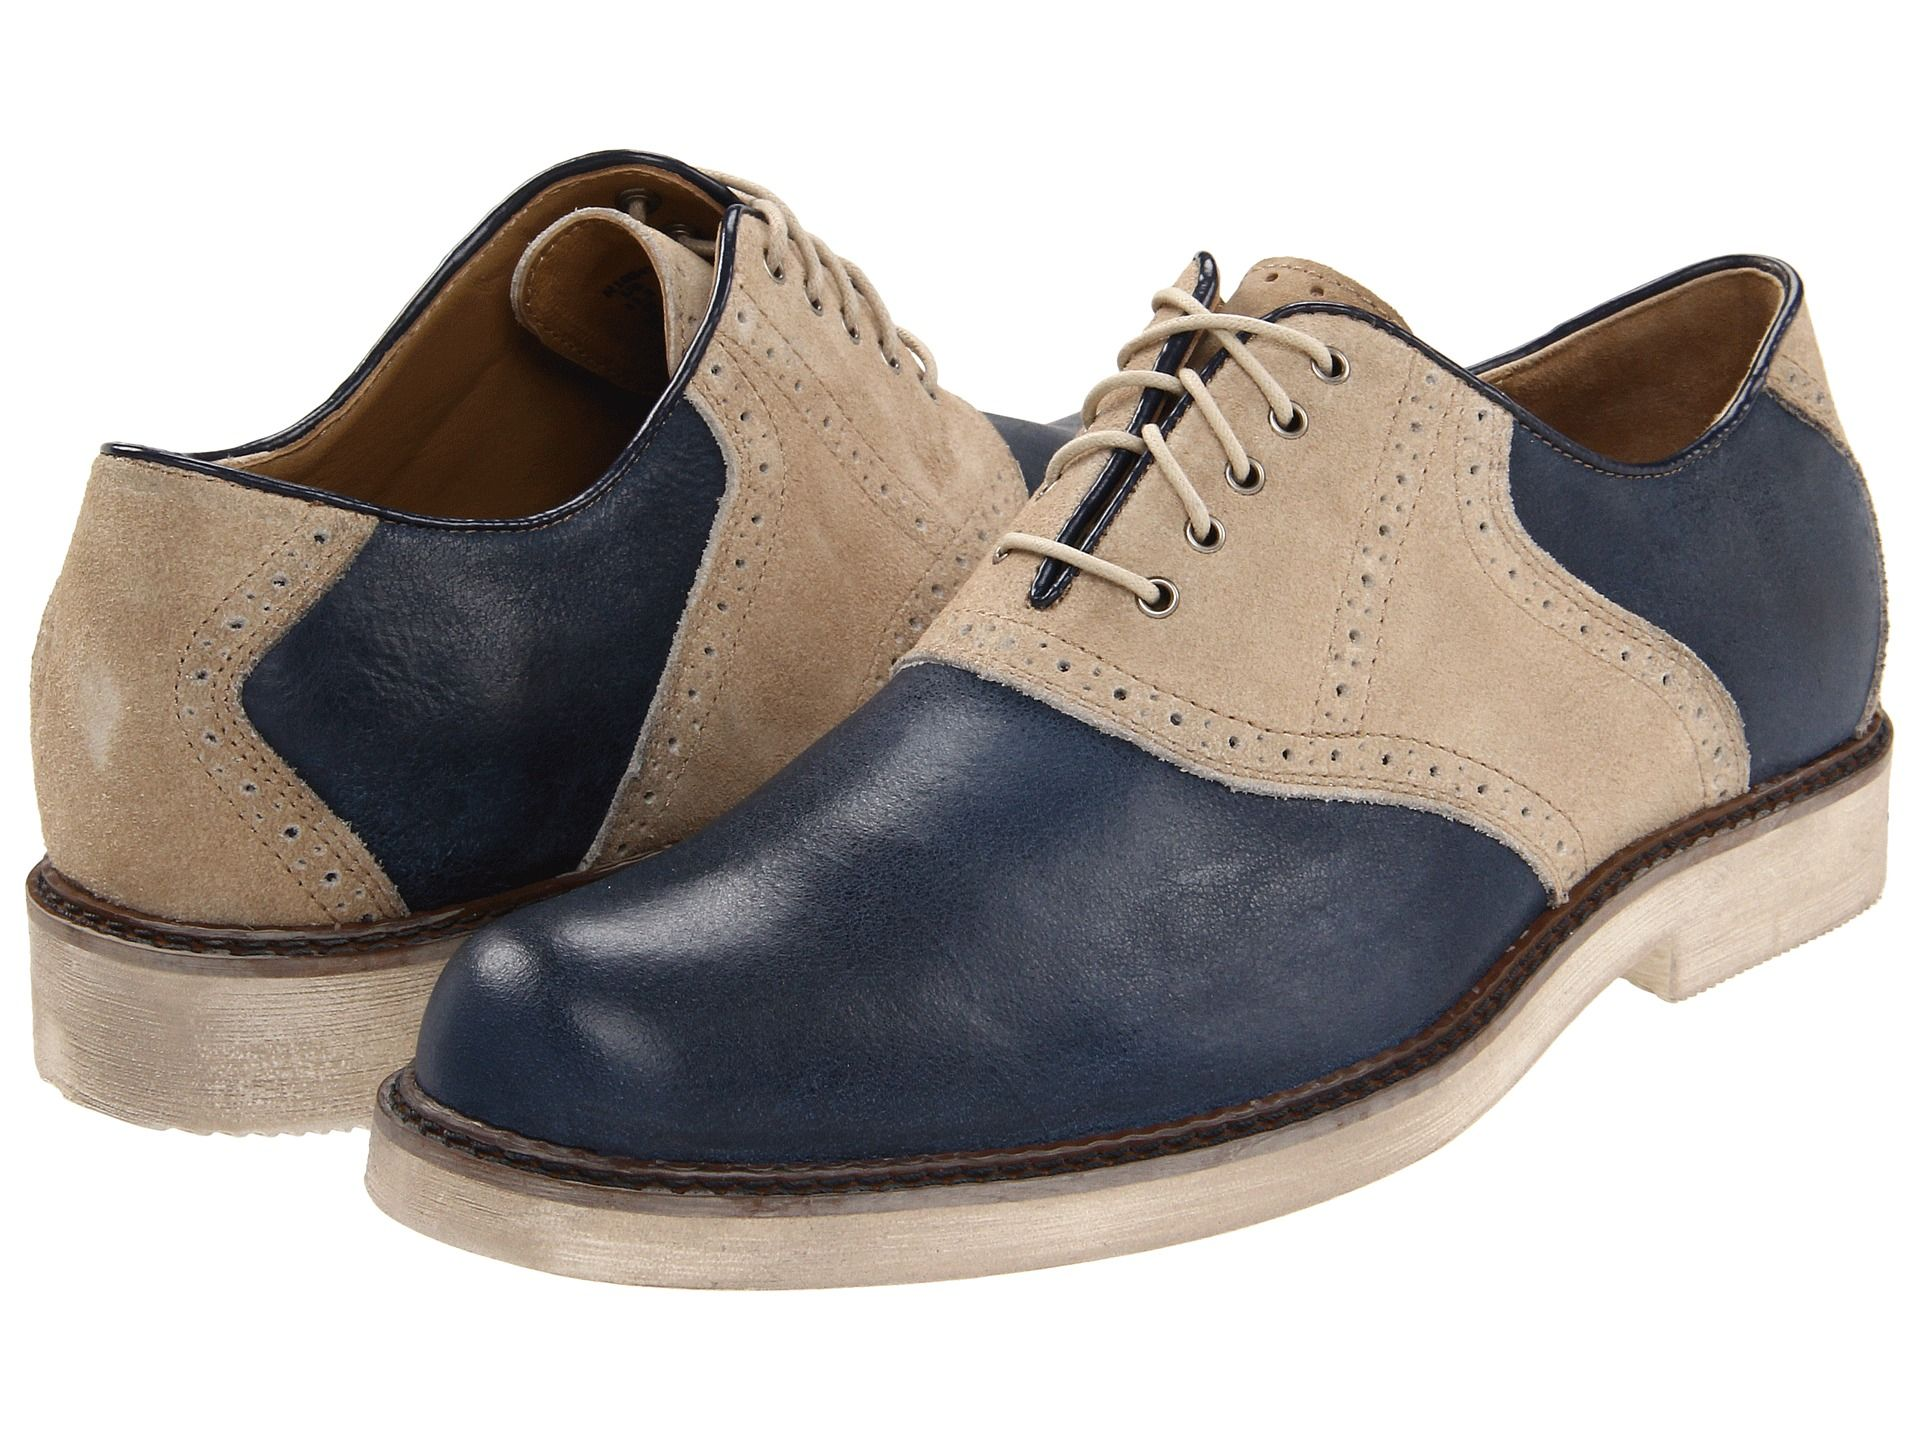 Hush Puppies Authentic Blue Leather